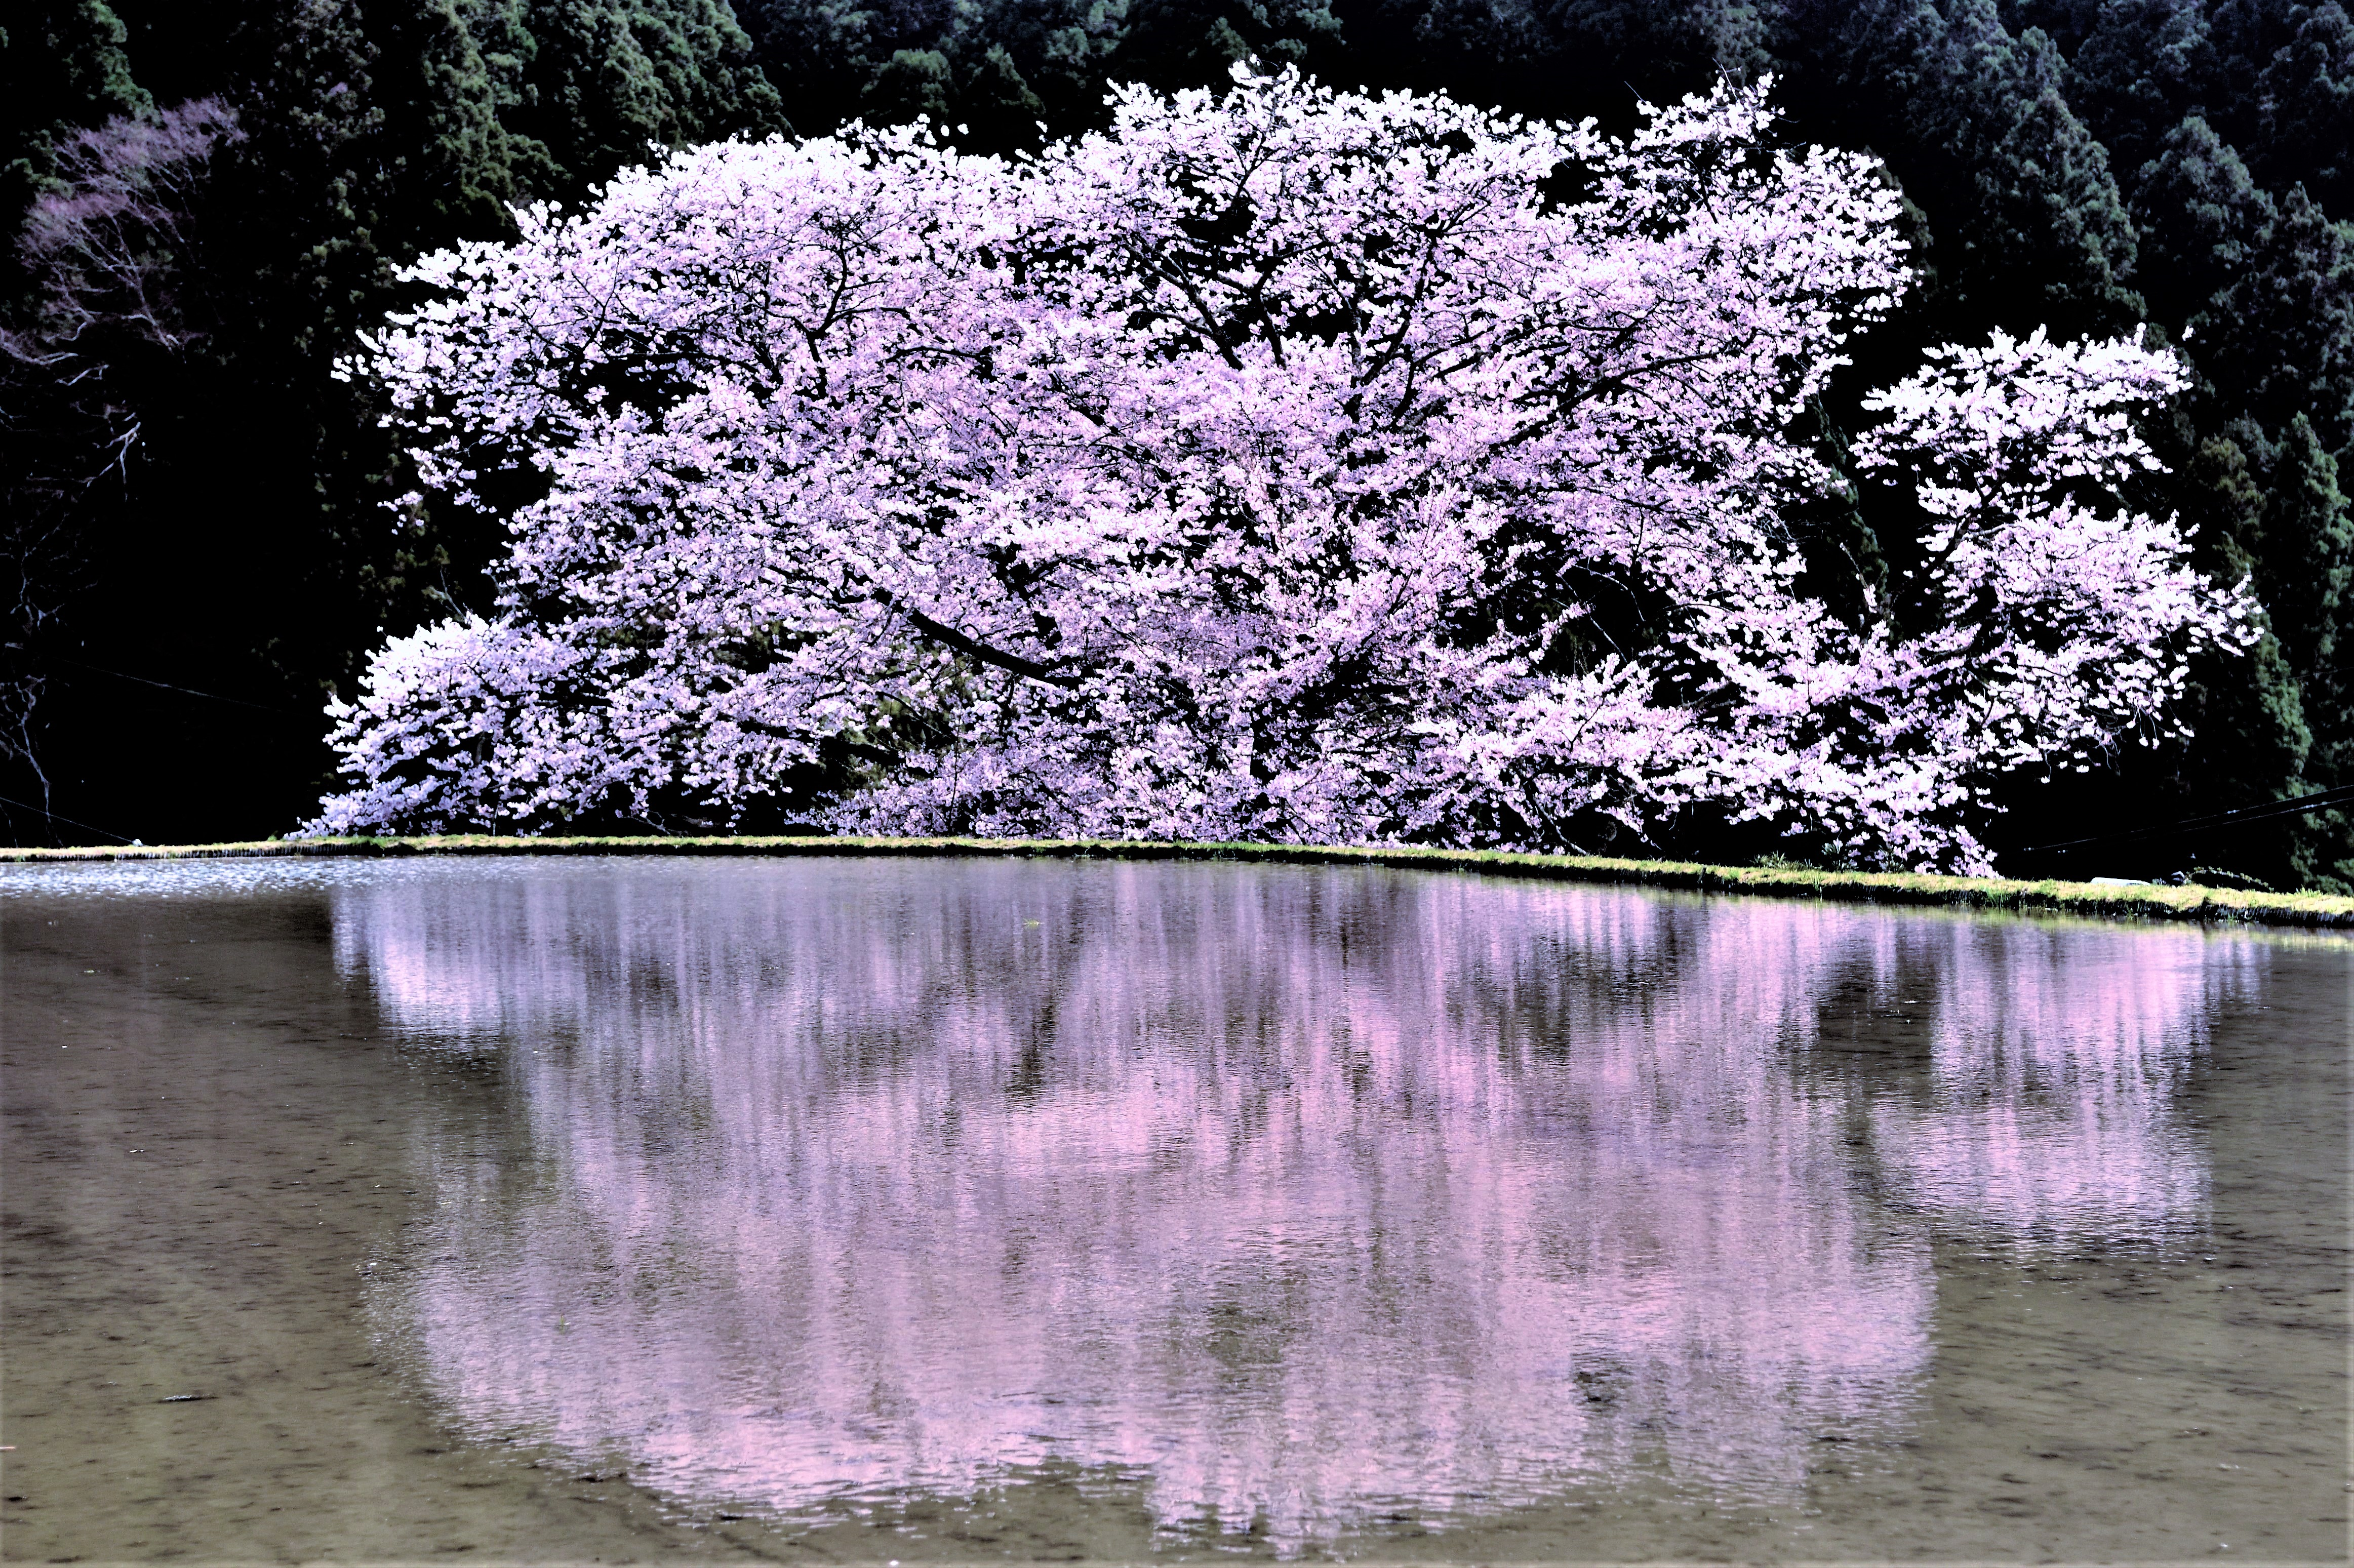 Cherry blossoms reflected in the paddy field